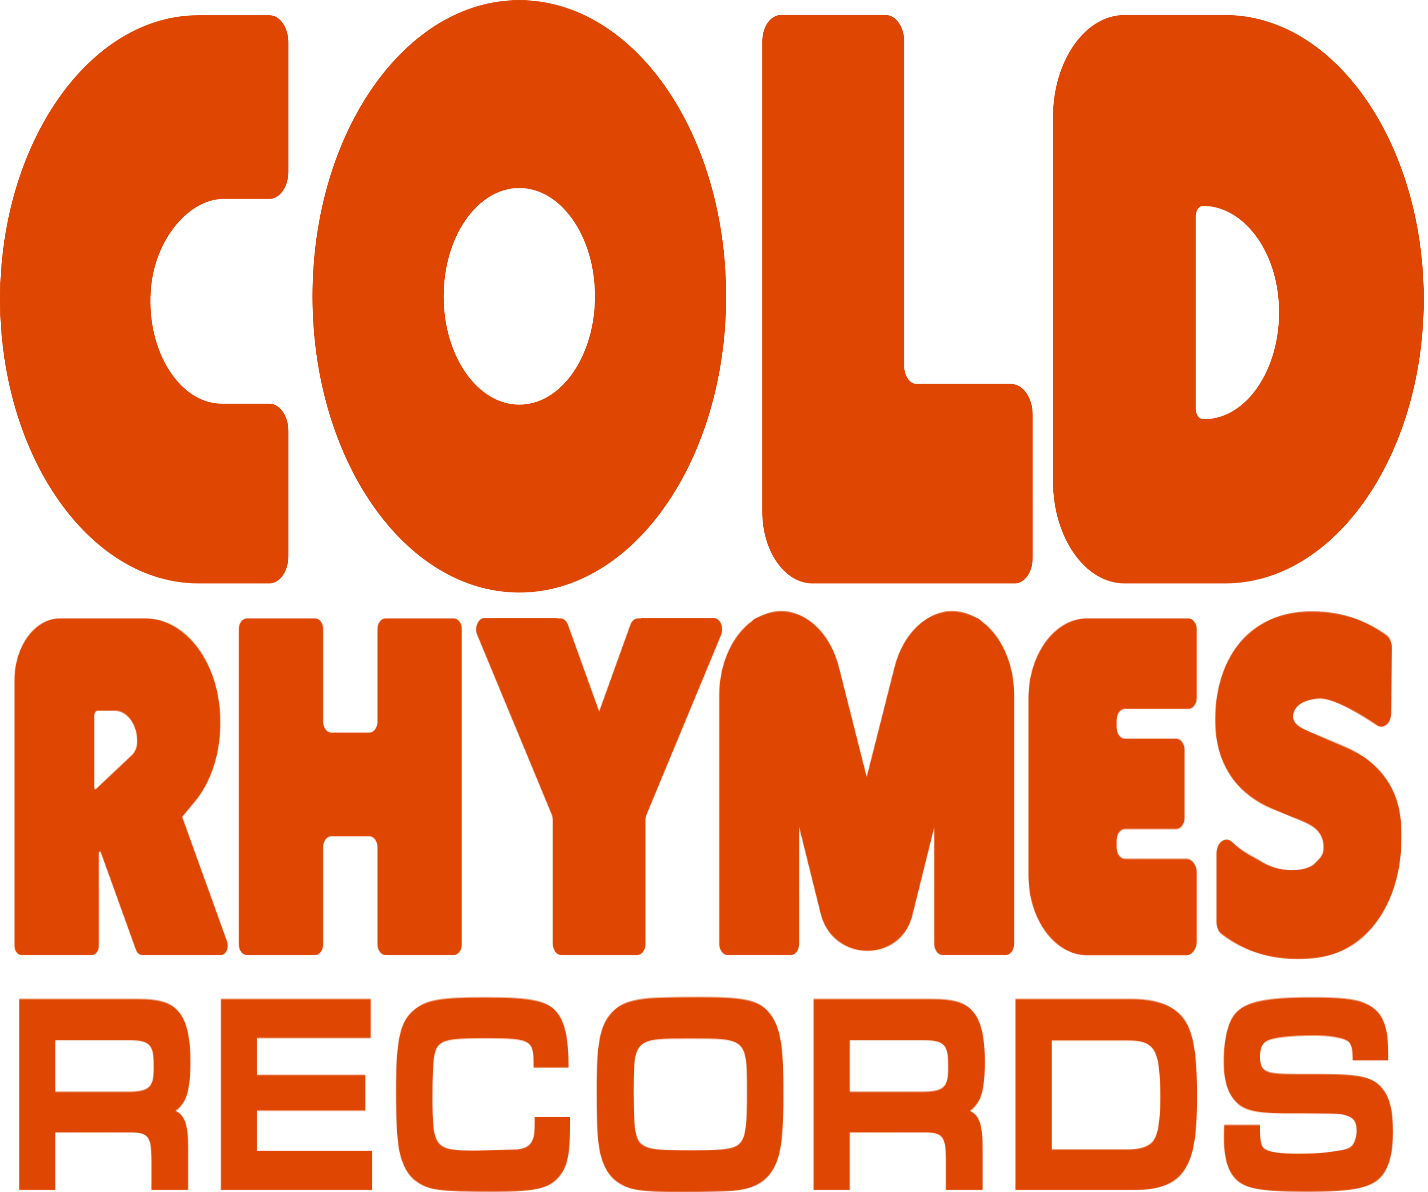 COLD RHYMES RECORDS